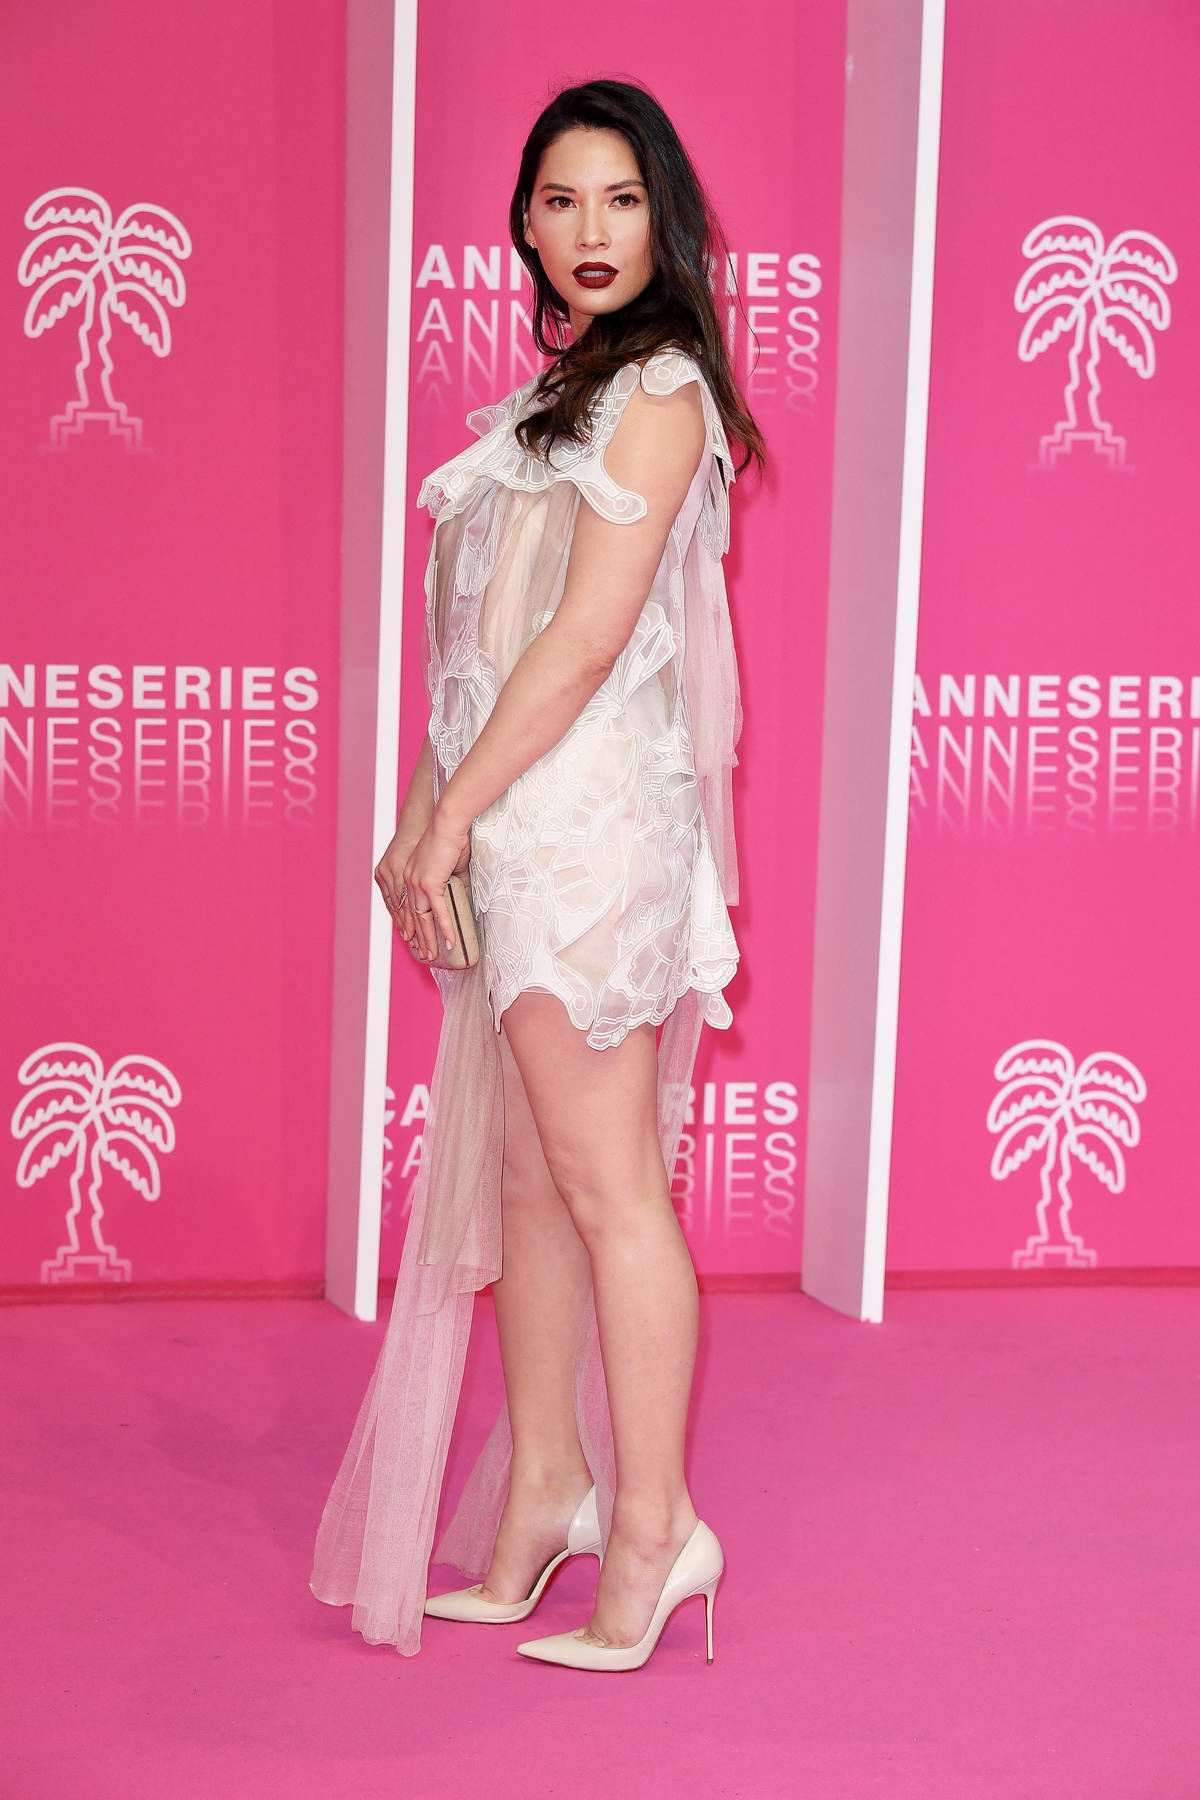 Olivia Munn attends the 2nd Cannesseries at the Palais Des Festivals in Cannes, France